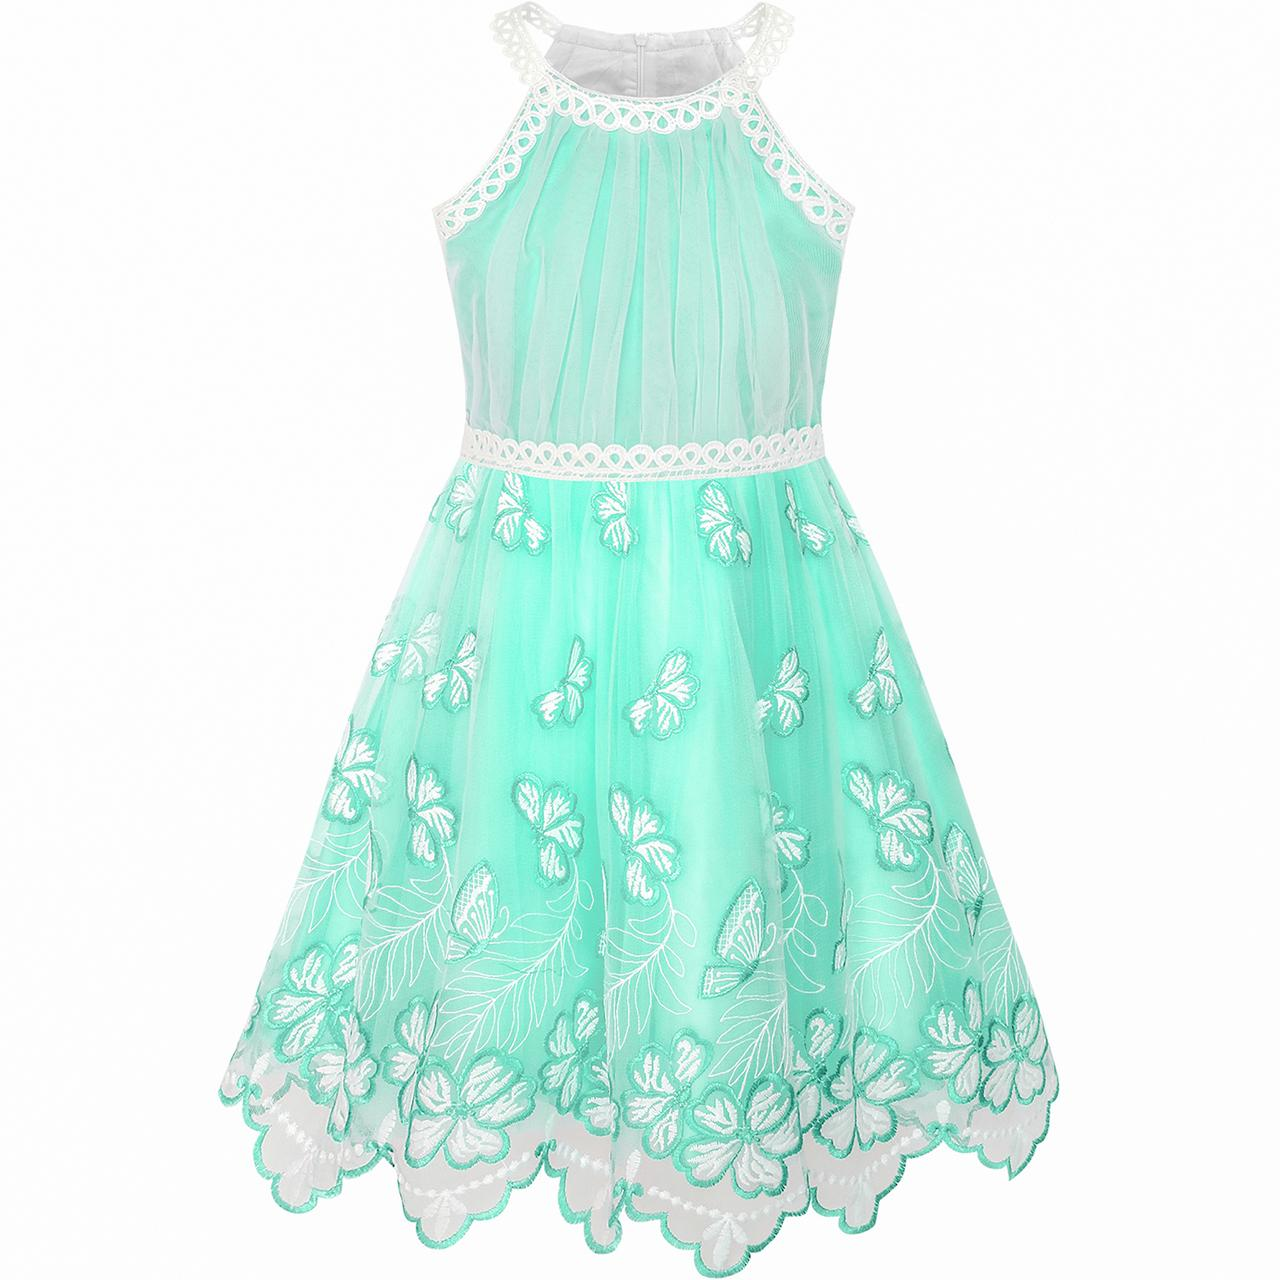 Girls Dress Turquoise Butterfly Embroidered Halter Party 2018 Summer Princess Wedding Dresses Size 5: Erfly Embroidered Wedding Dress At Reisefeber.org